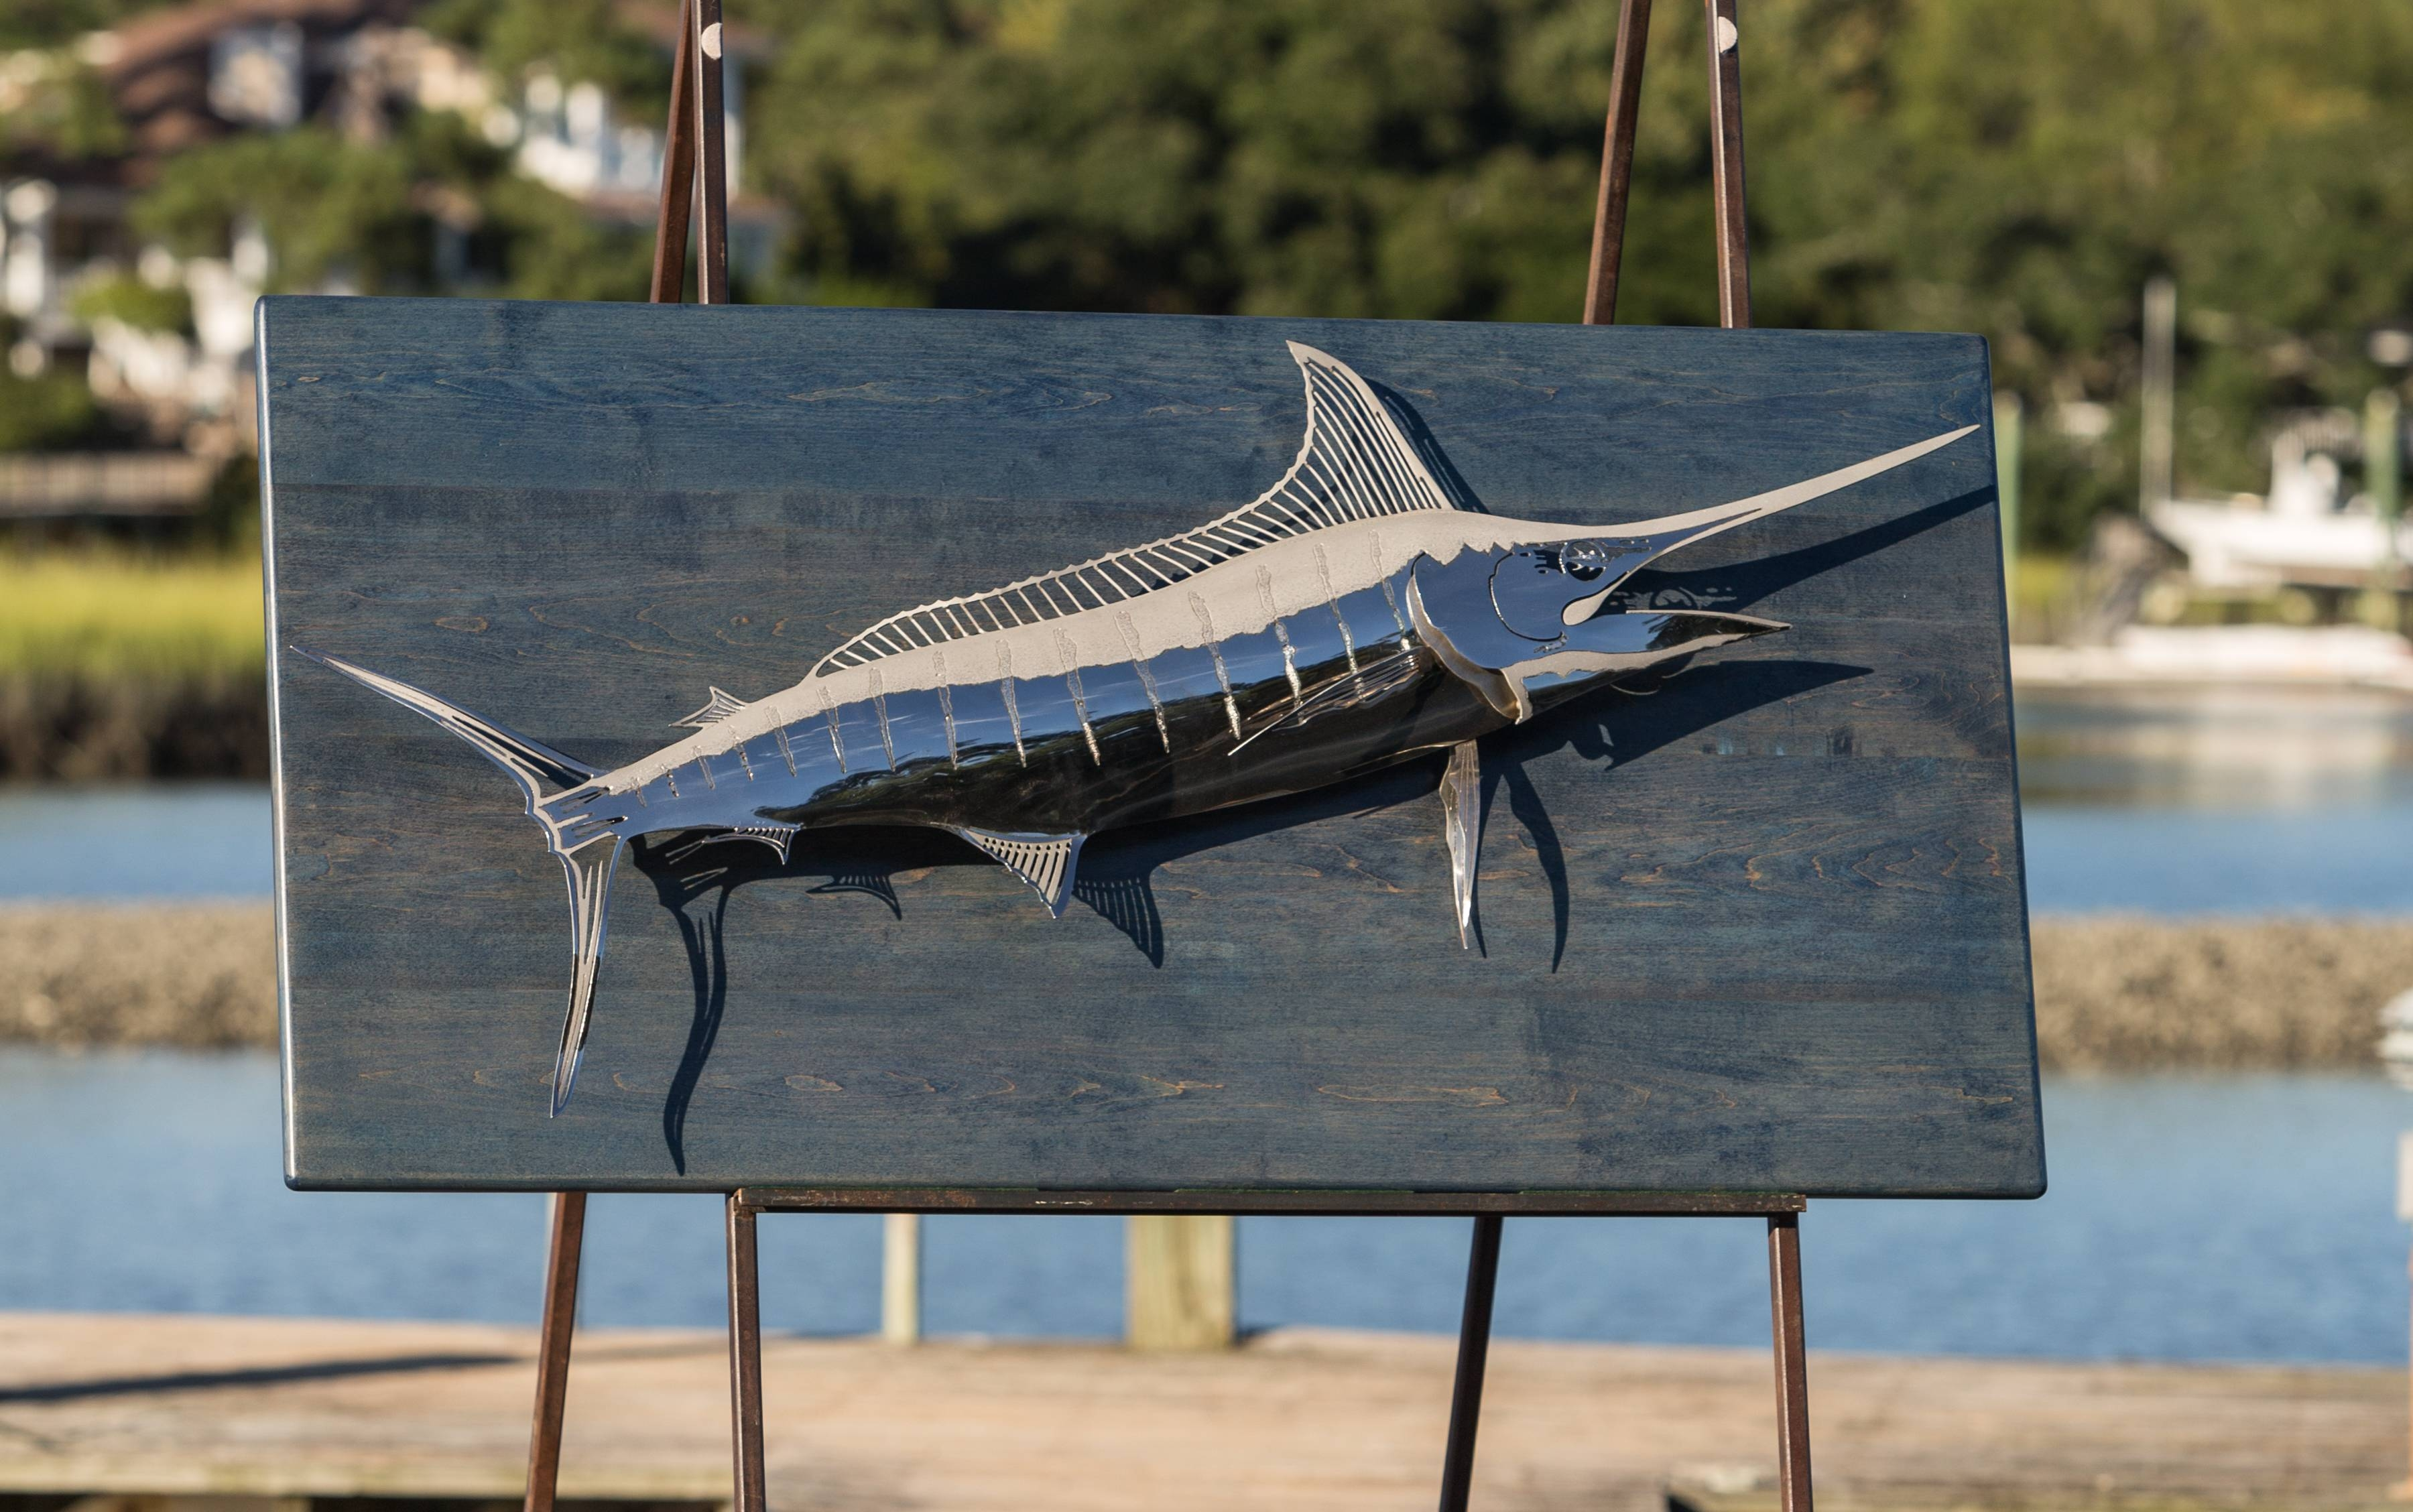 Custom Artwork, Sculptures And Furniture Gallery In Most Up To Date Stainless Steel Fish Wall Art (View 7 of 17)